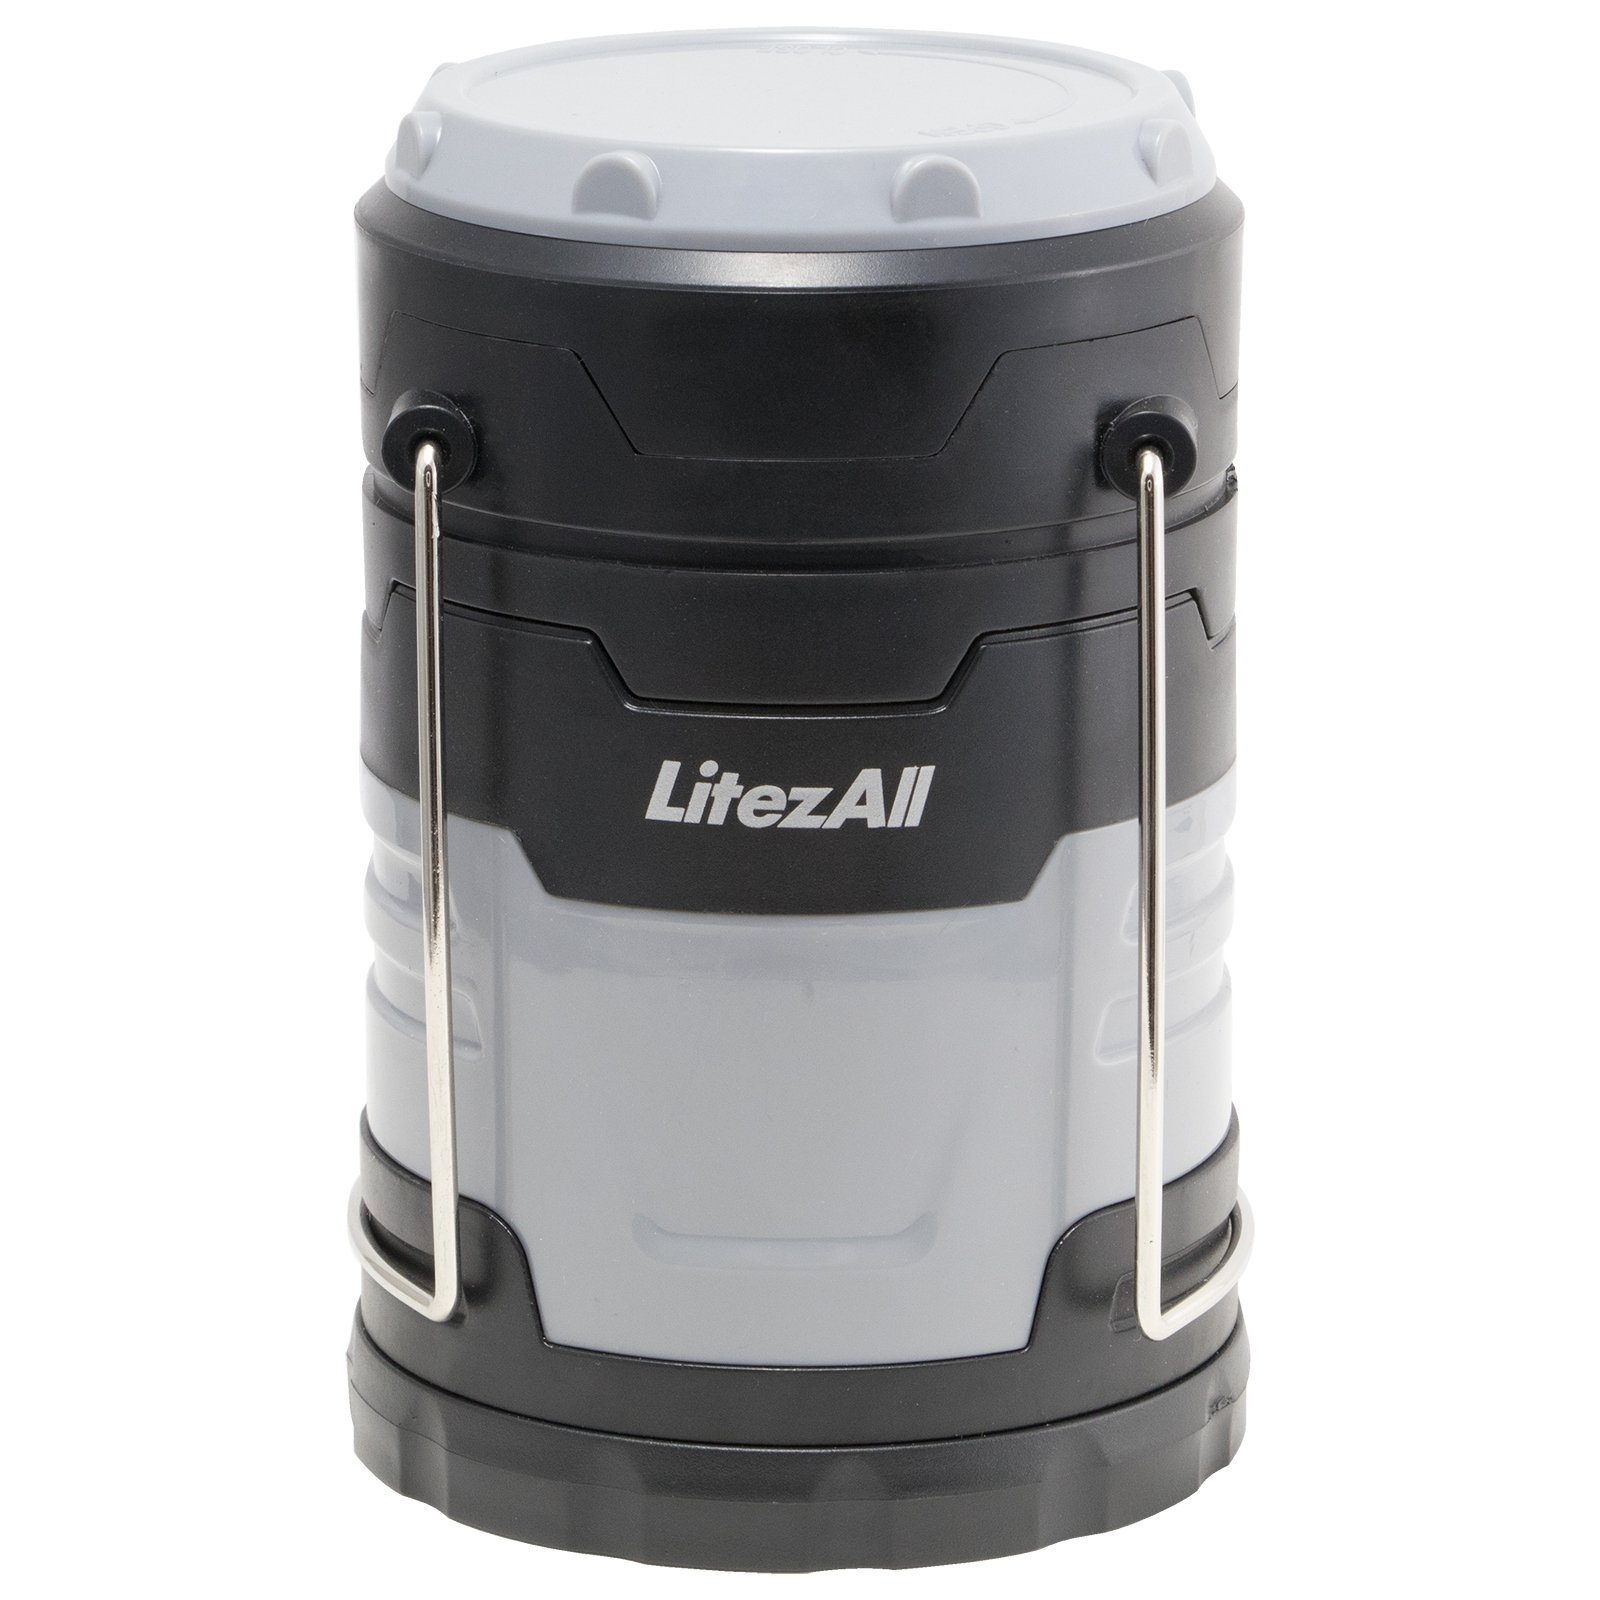 LitezAll 200 Lumens EASY PULL OPEN COB LED Lantern/FOR Camping, Workshops, Home, Cabin, or Outbuildings (100% Mfg Guarantee) (Gray) by Apollo's Products (Image #1)